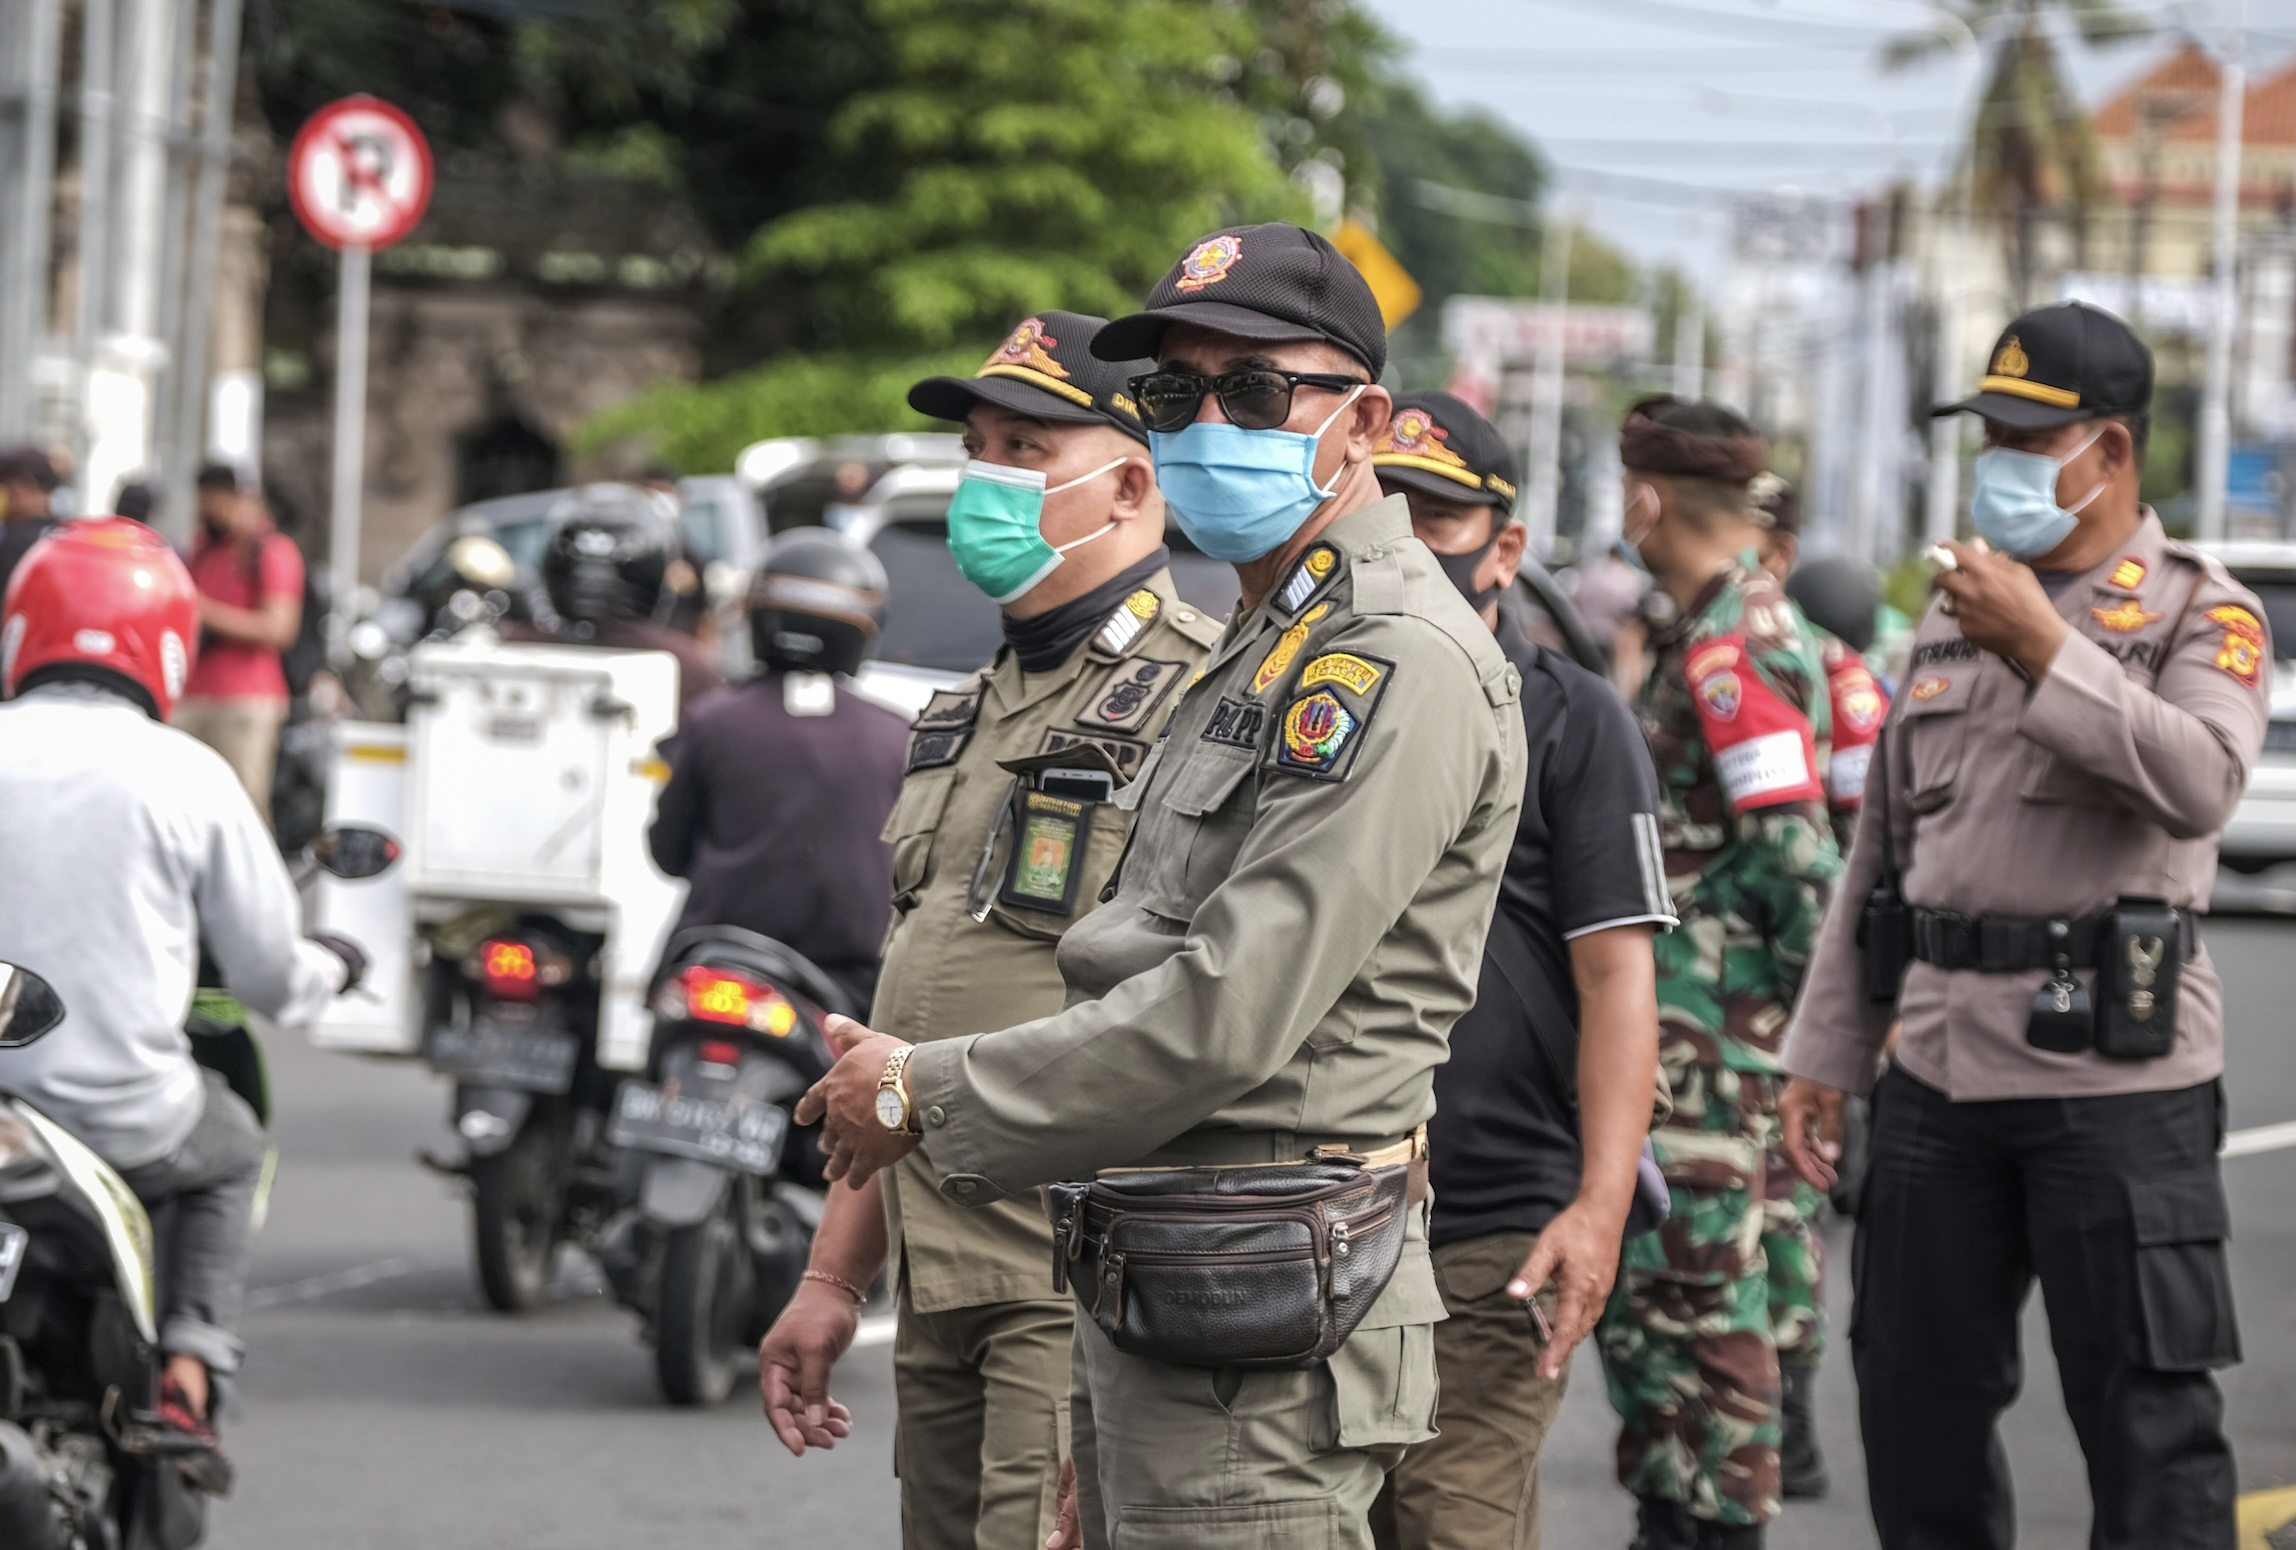 Prisoner Escaped From Quarantine Facility In Bali